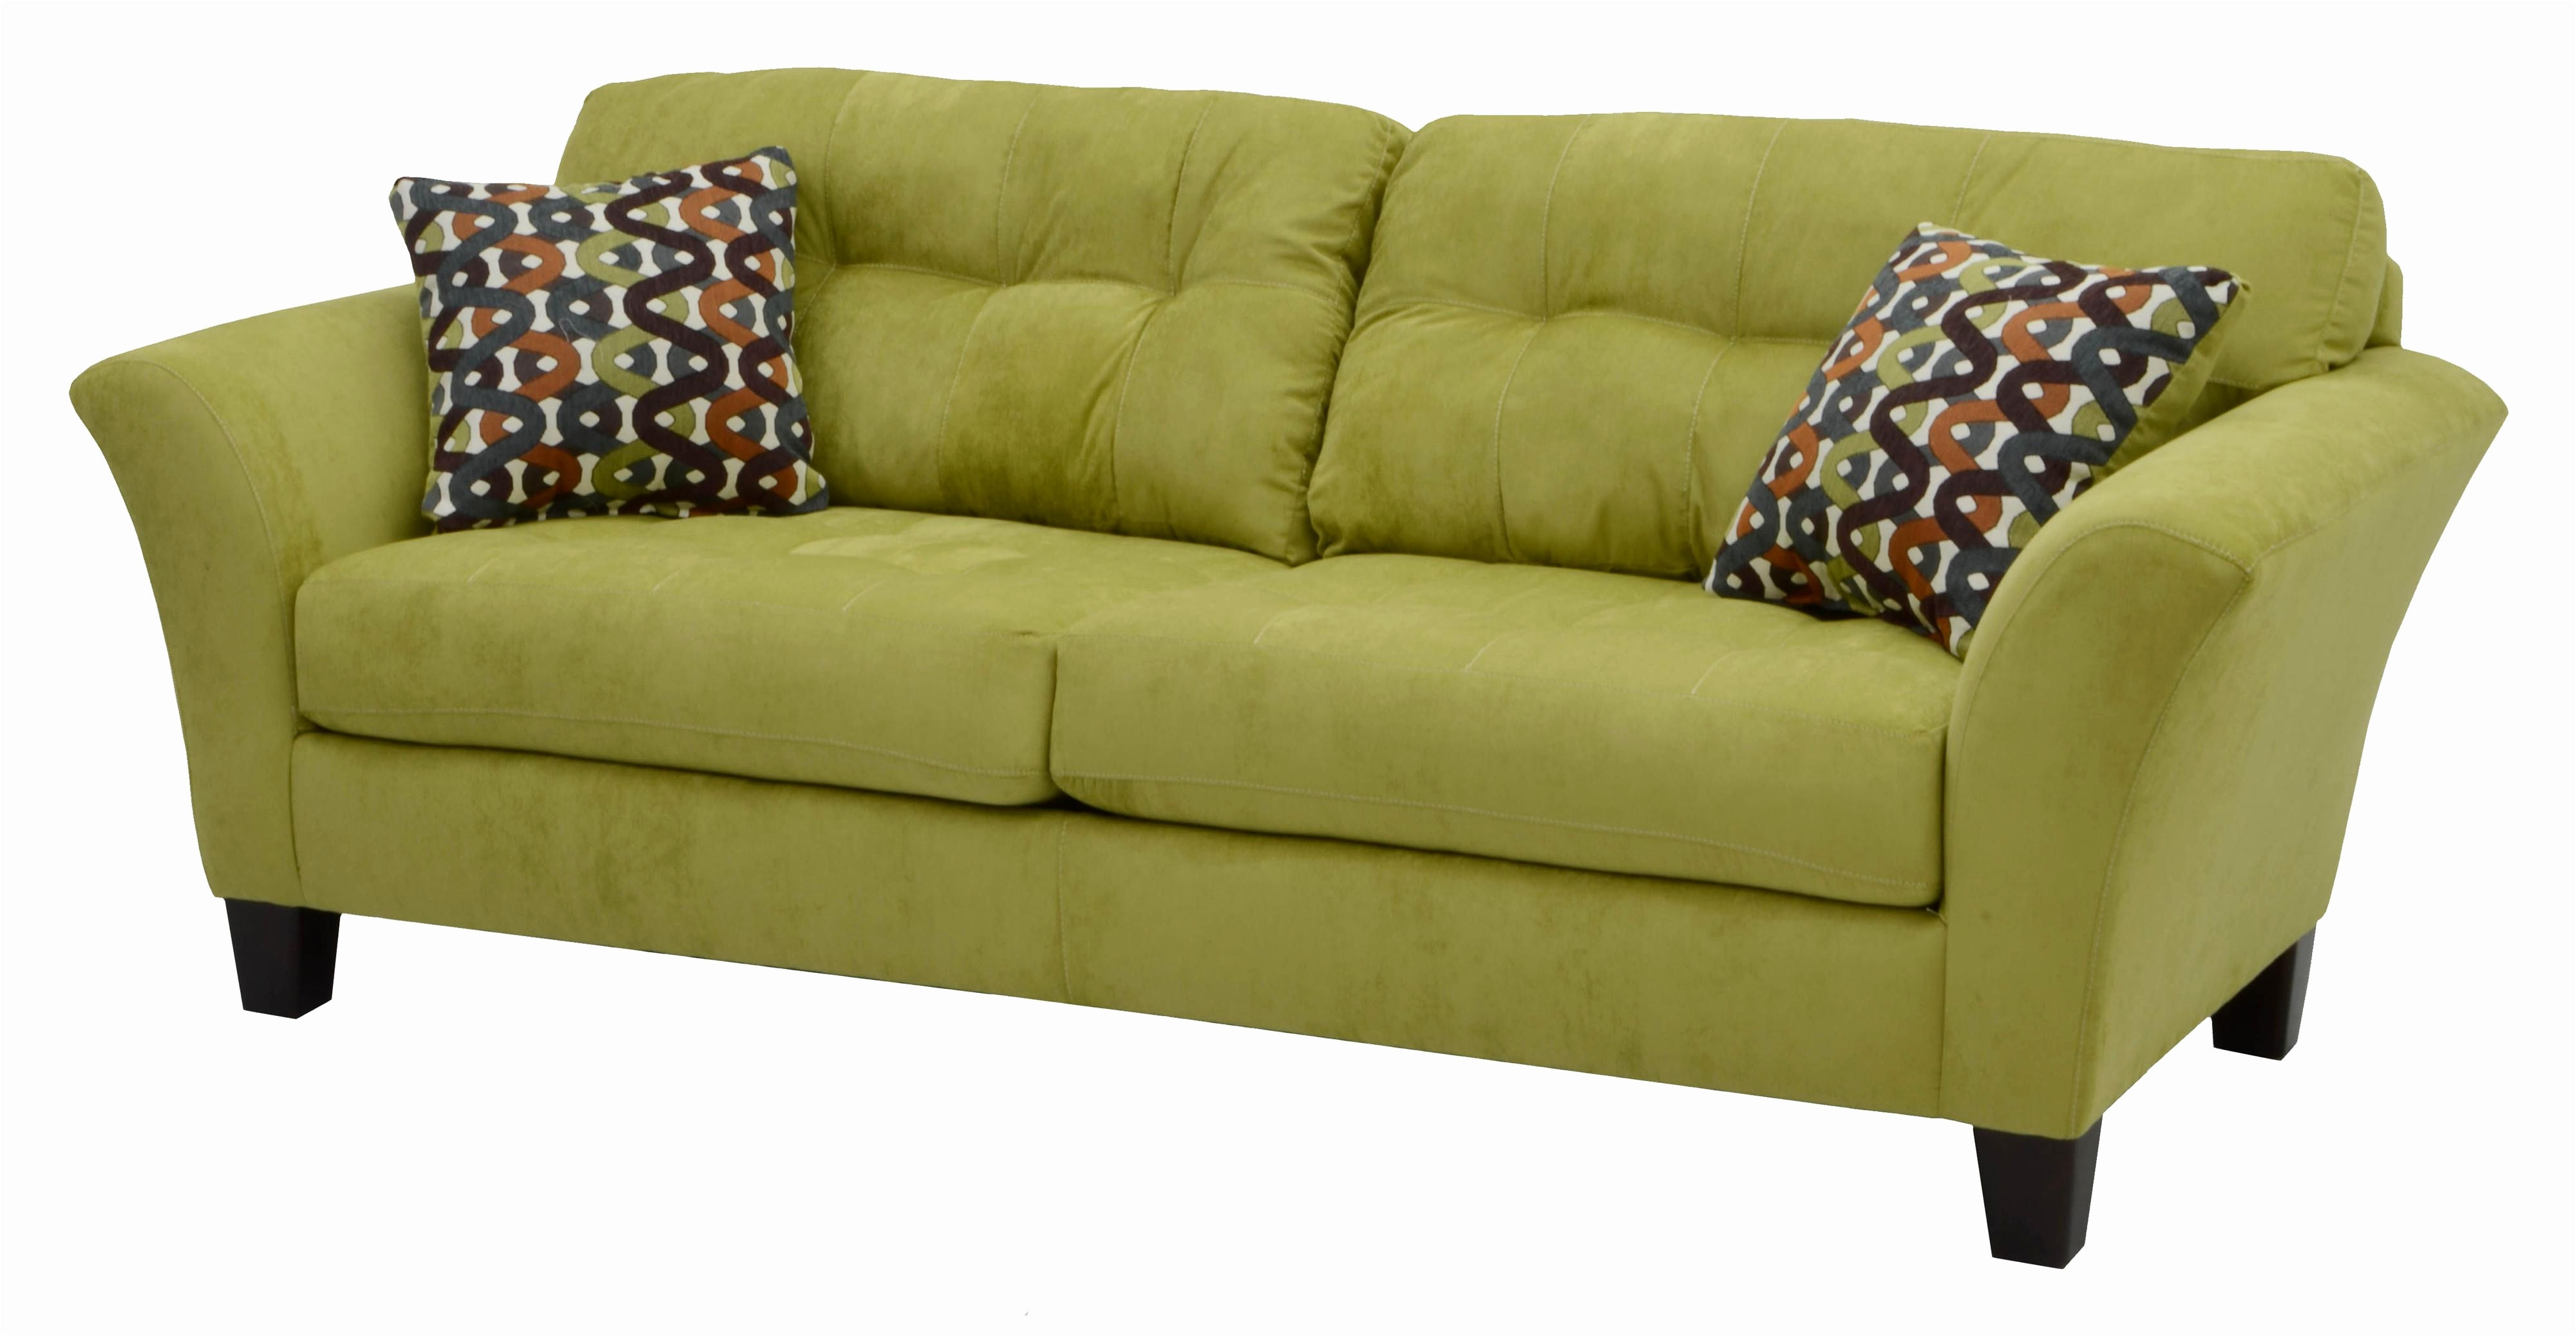 awesome leather tufted sofa construction-Wonderful Leather Tufted sofa Pattern